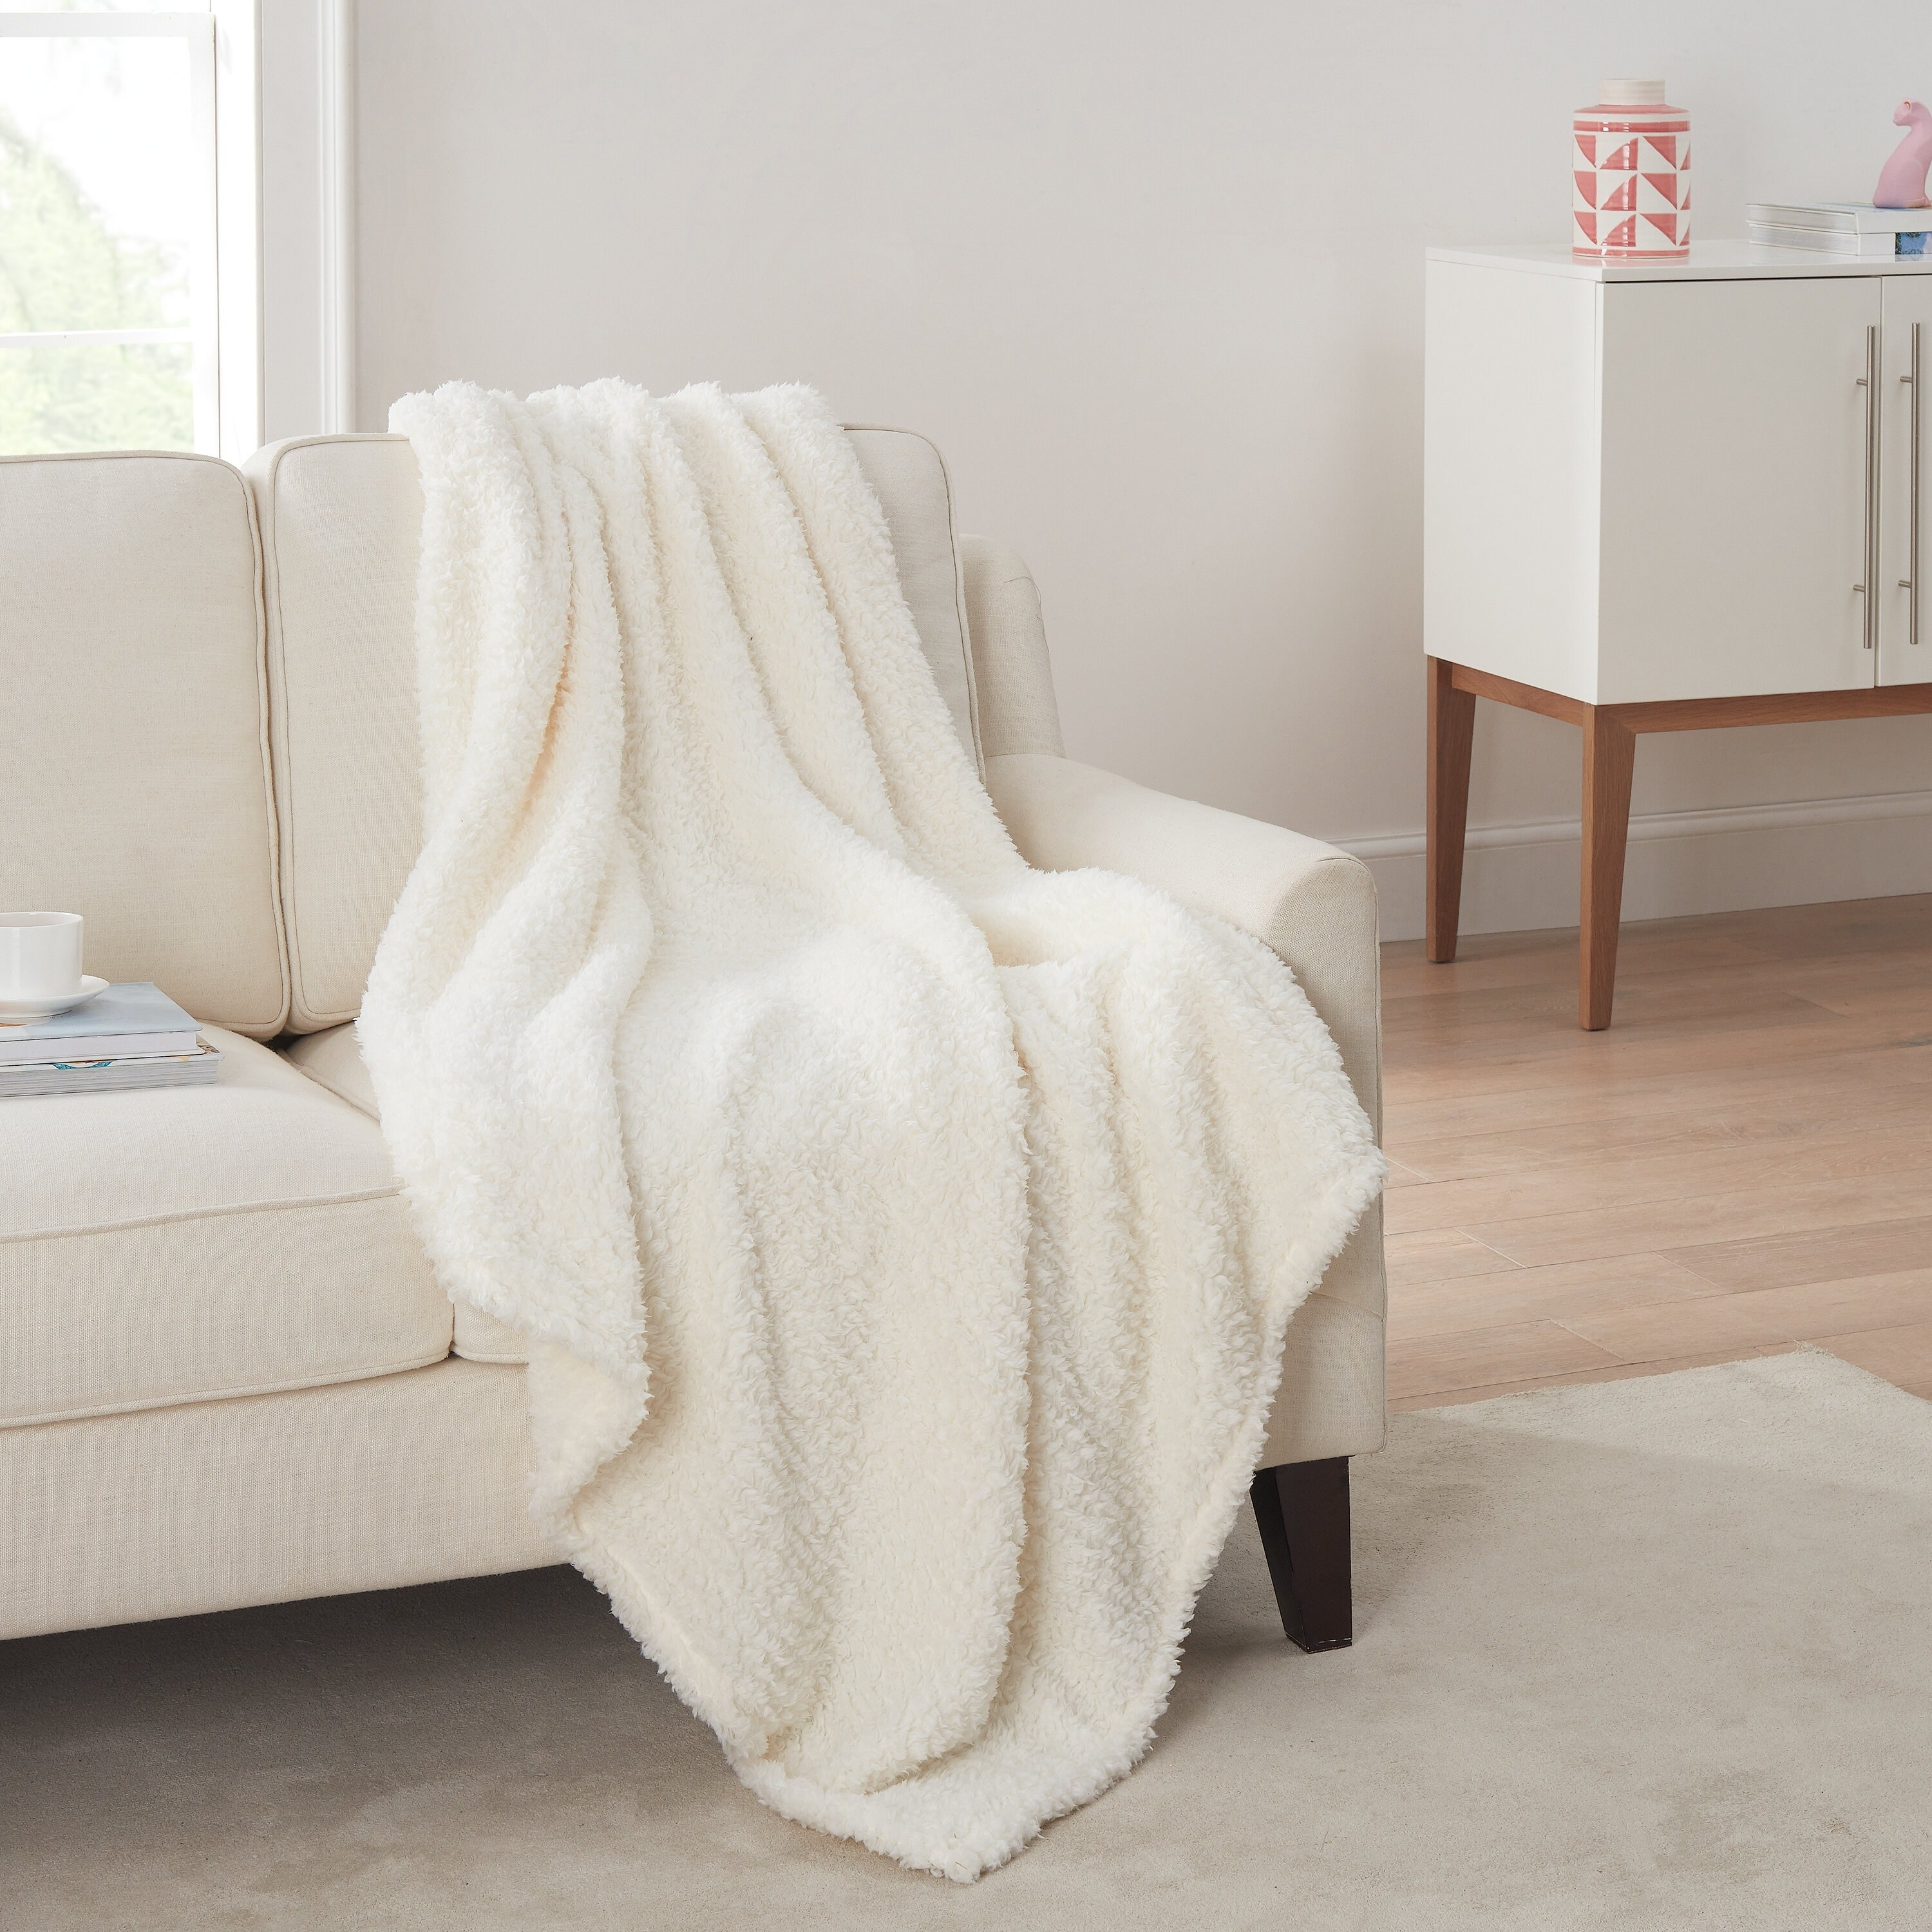 The sherpa fleece throw blanket in cream draped over a couch